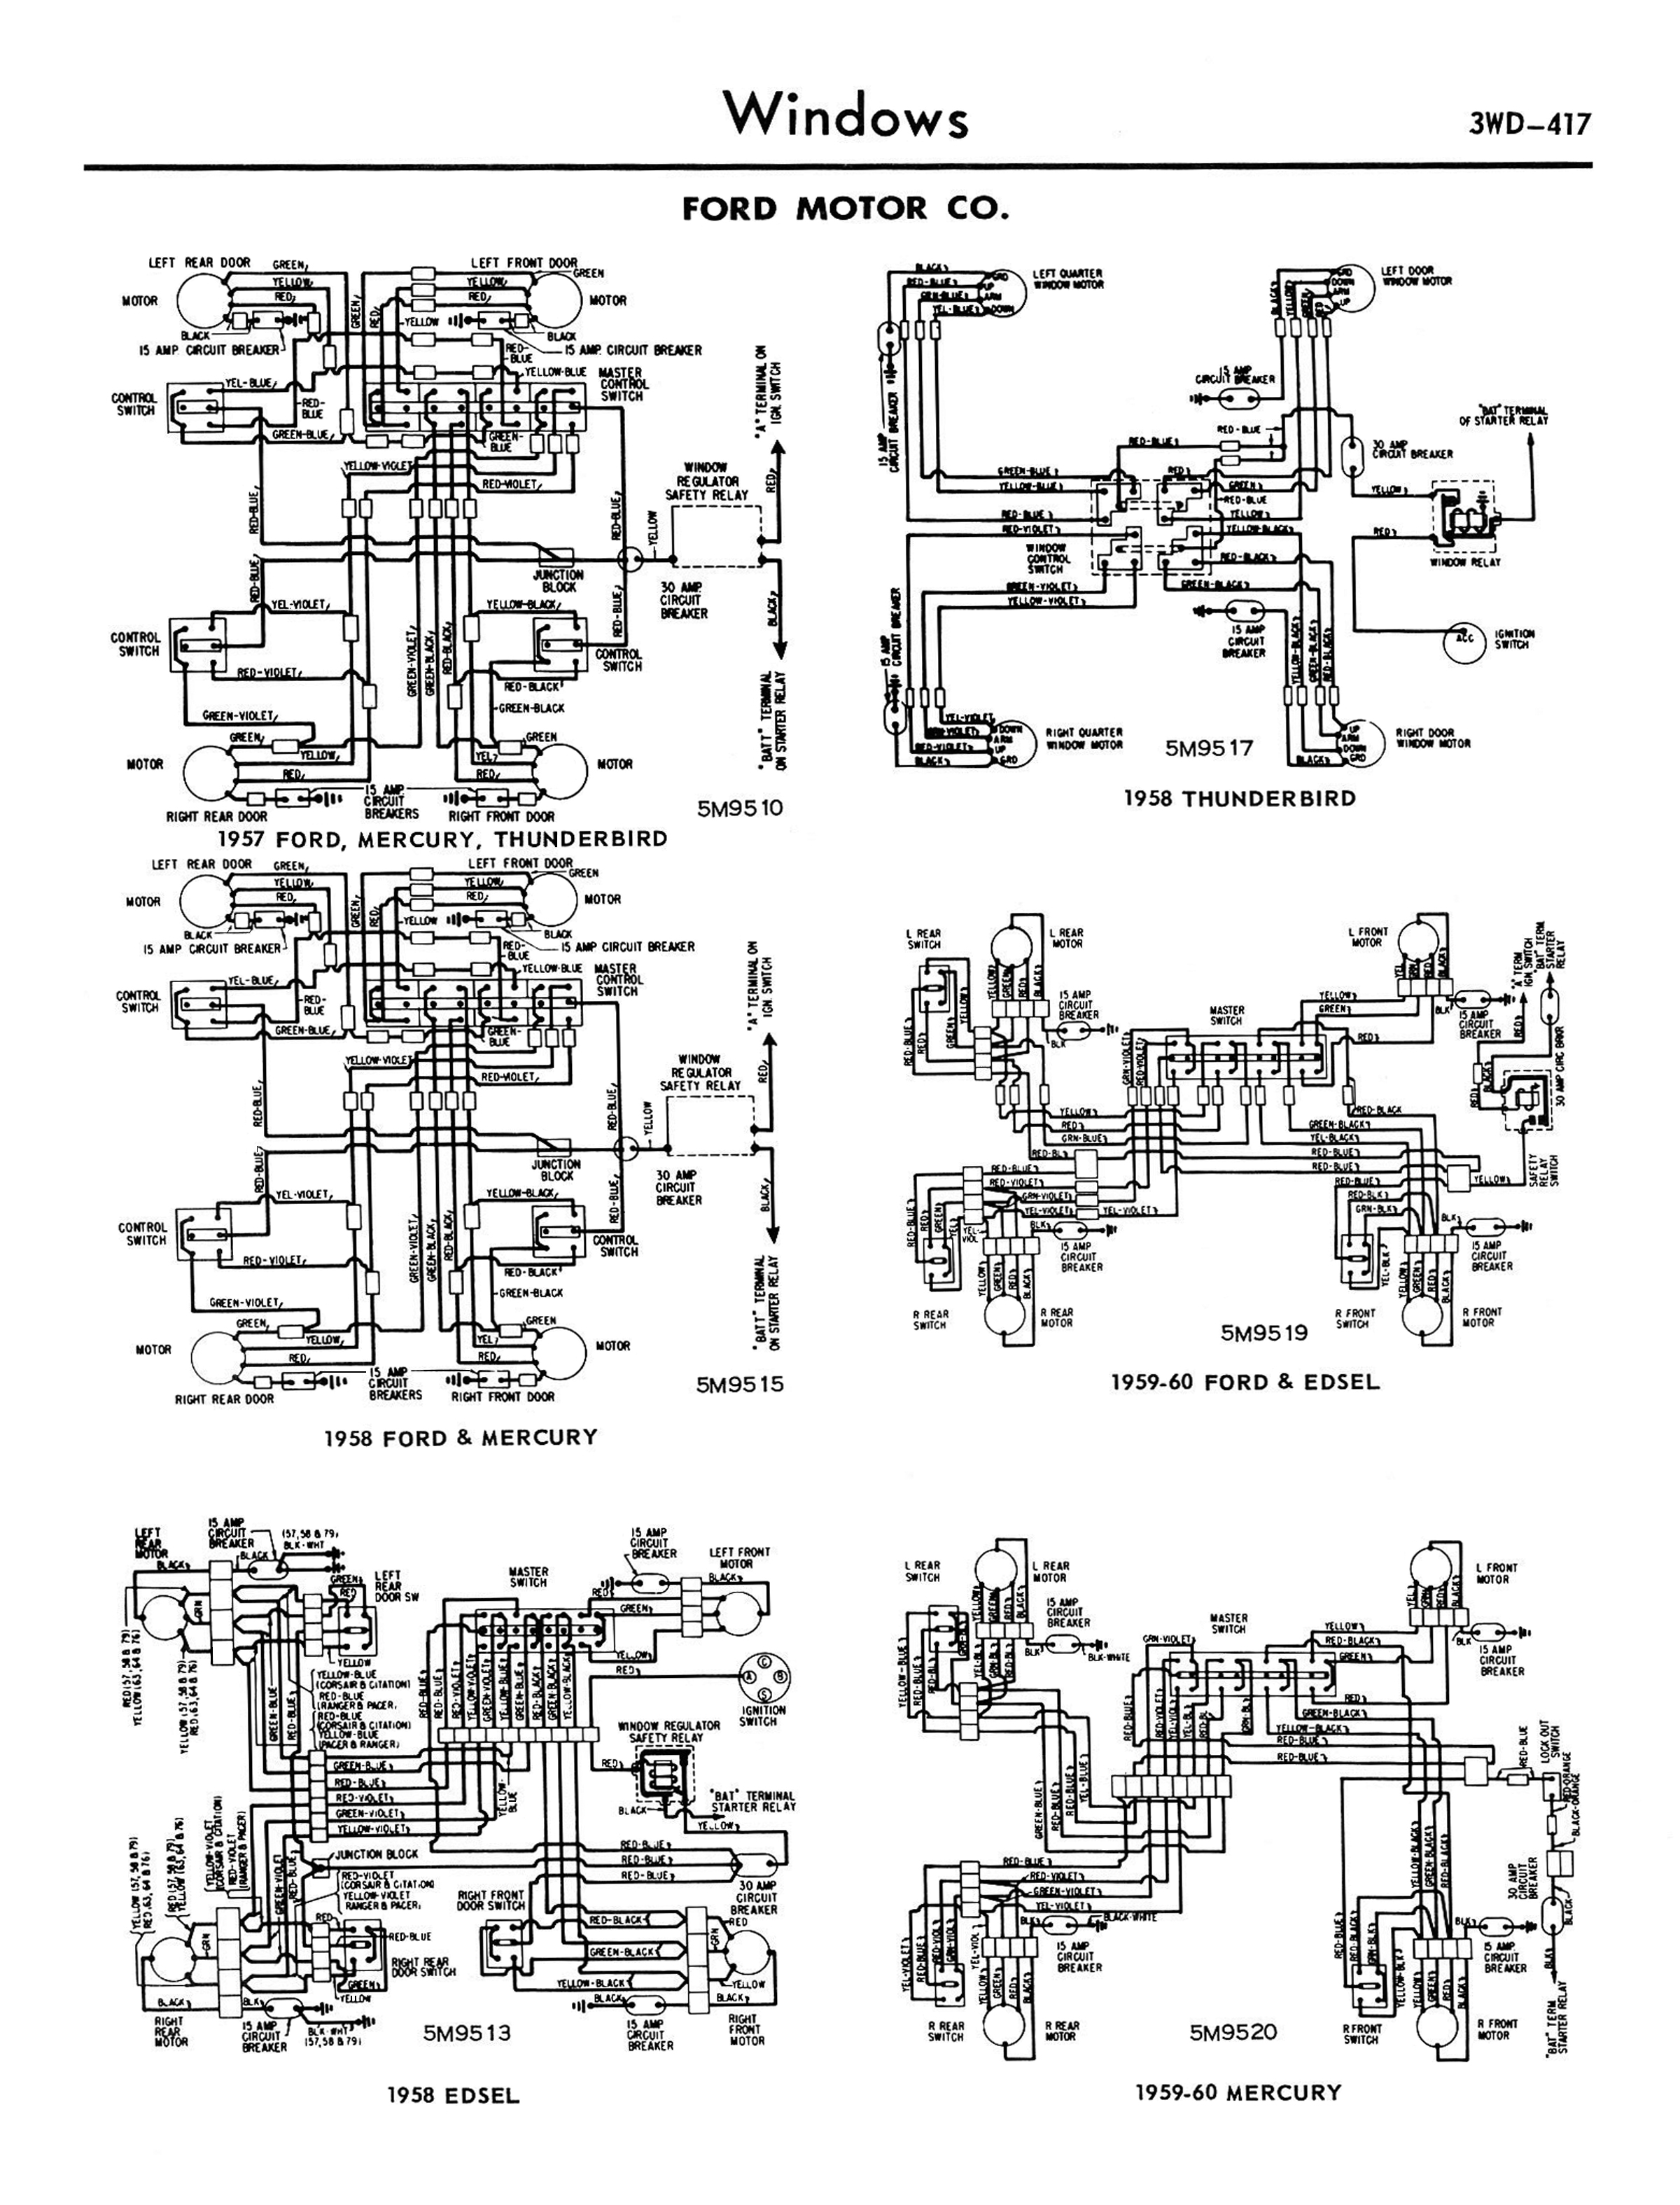 1958-68 Ford Electrical Schematics